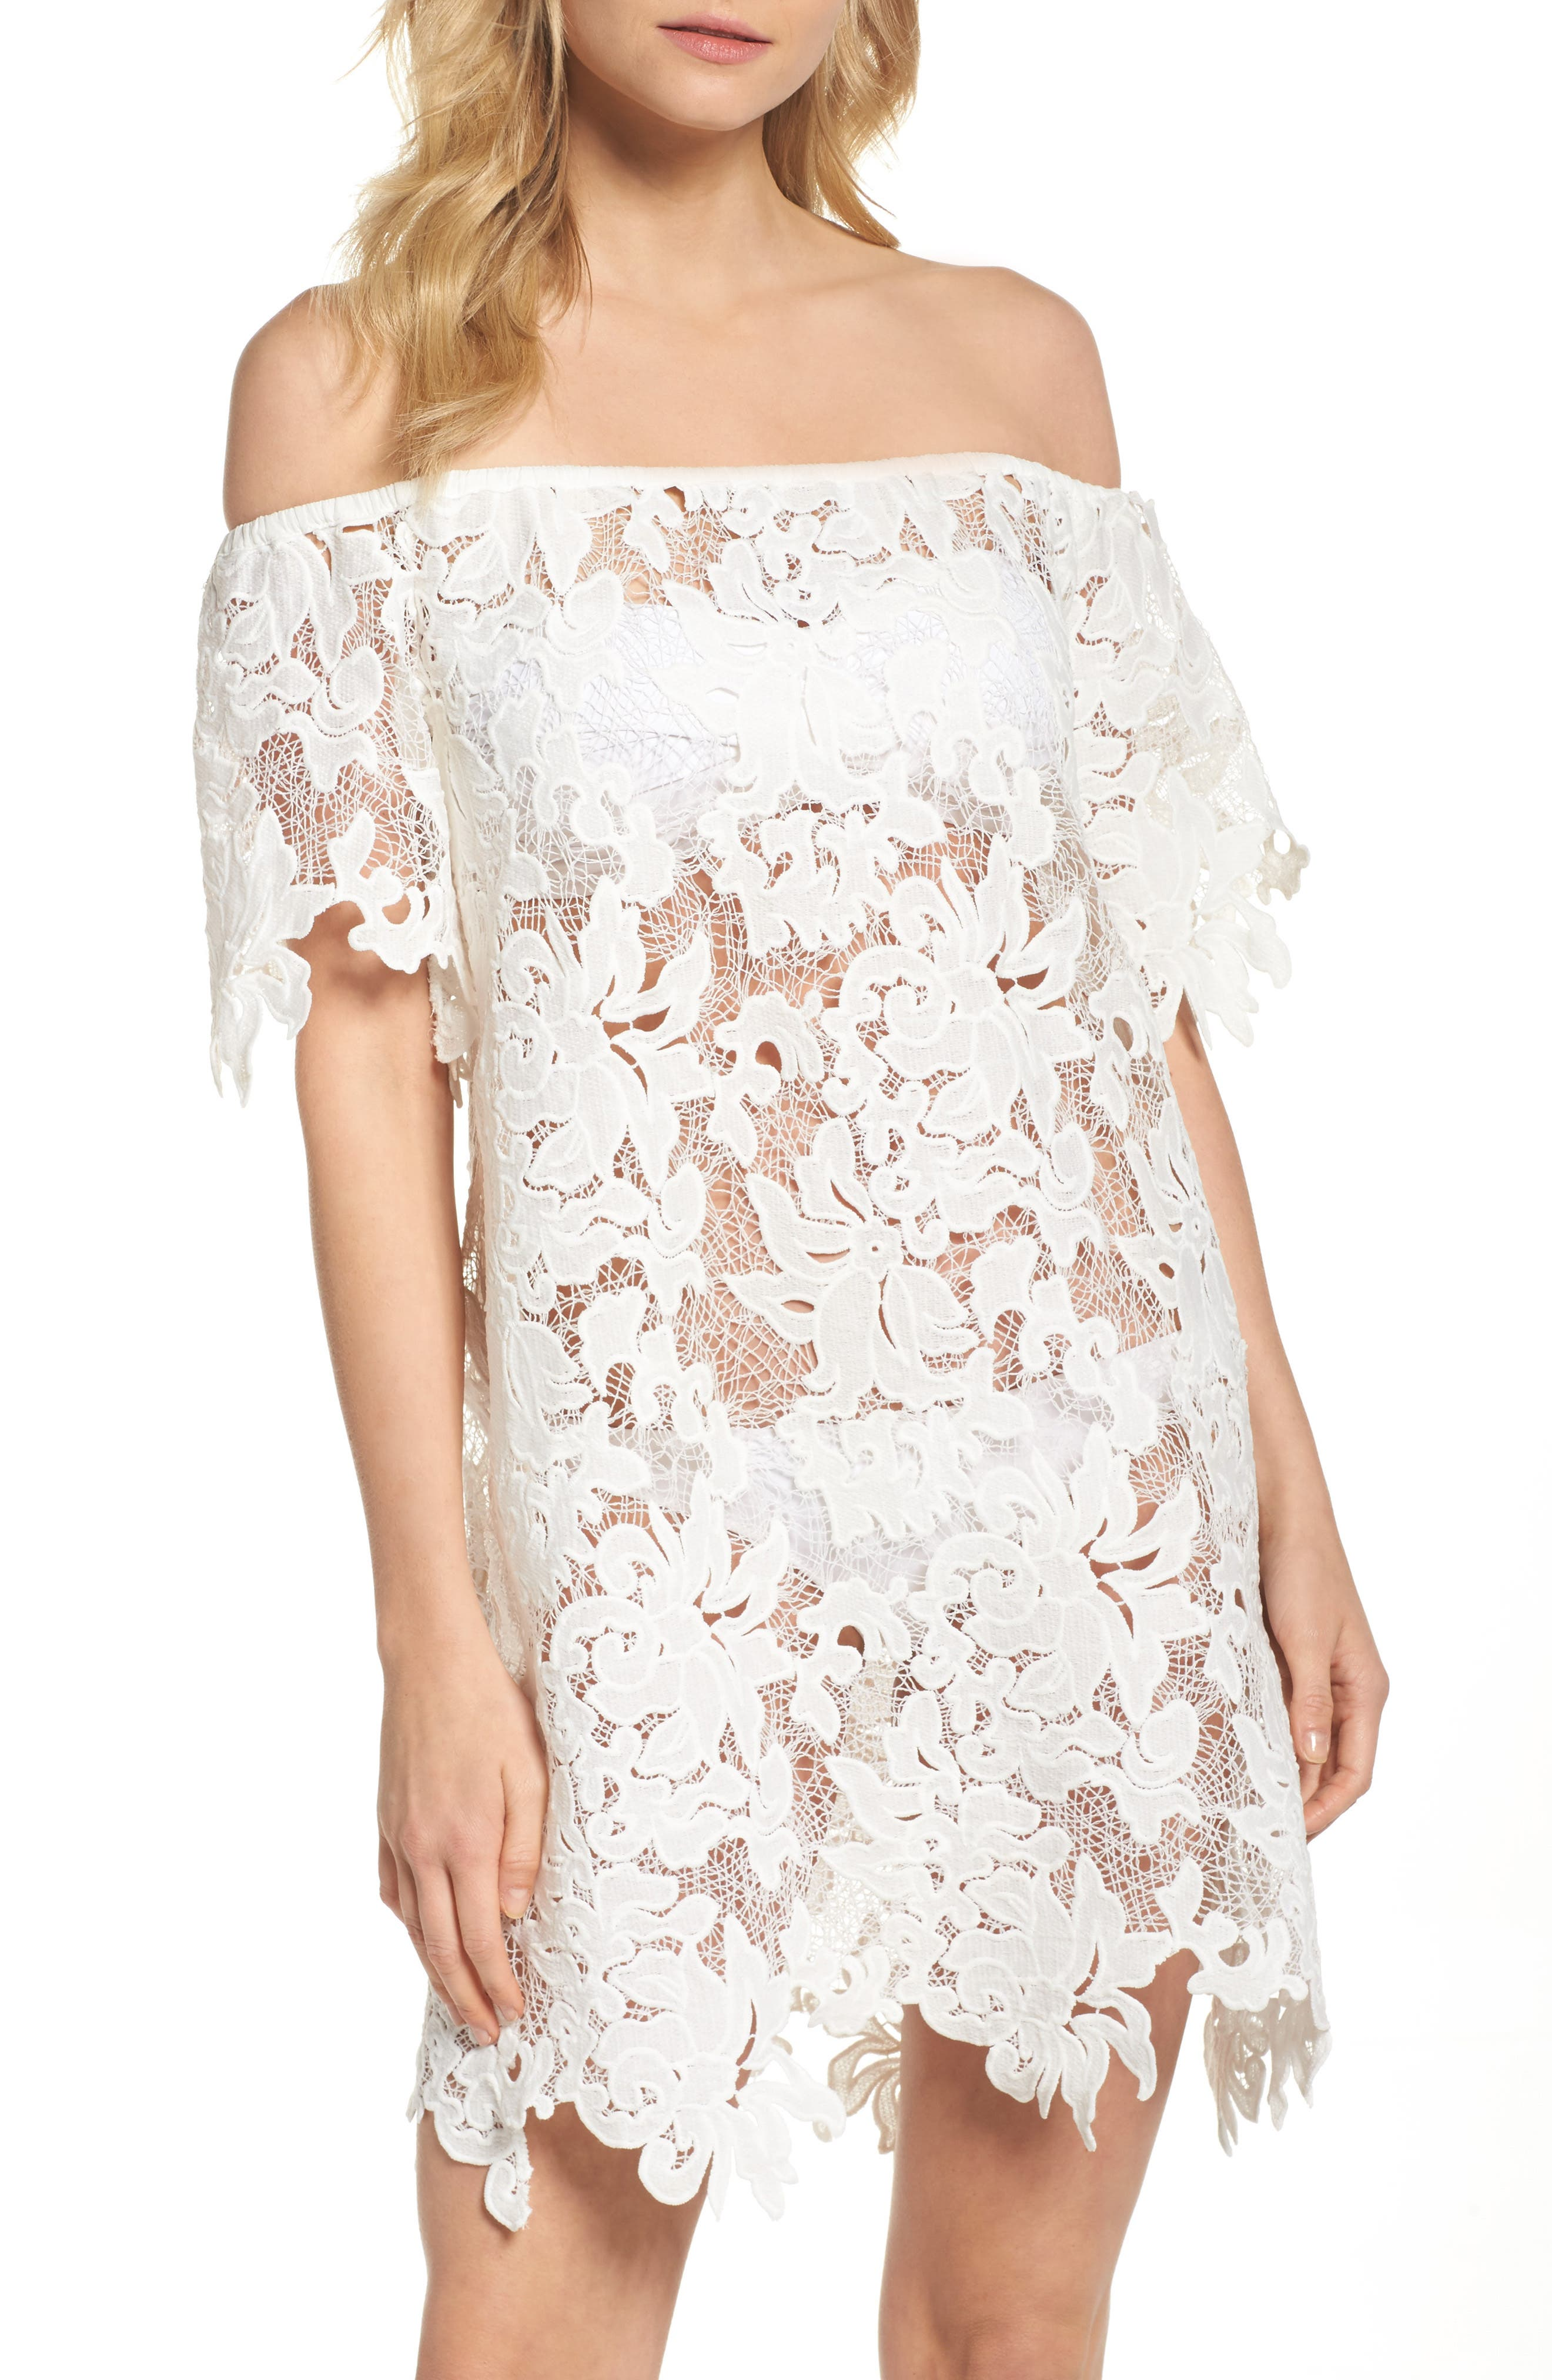 Main Image - Muche et Muchette Ode Rosette Lace Cover-Up Dress